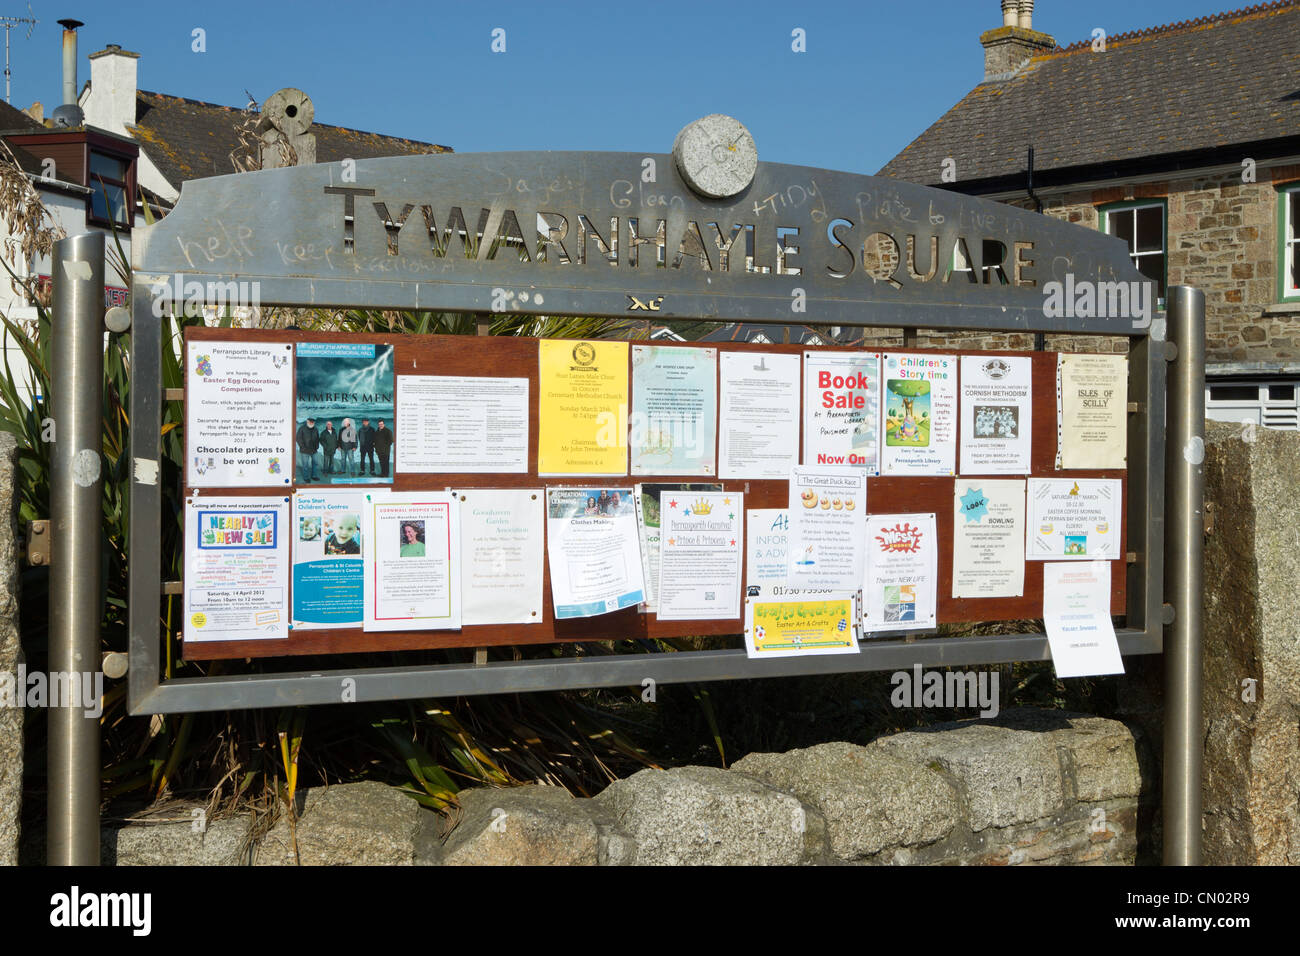 Tywarnhayle Square information noticeboard in Perranporth, Cornwall UK. - Stock Image